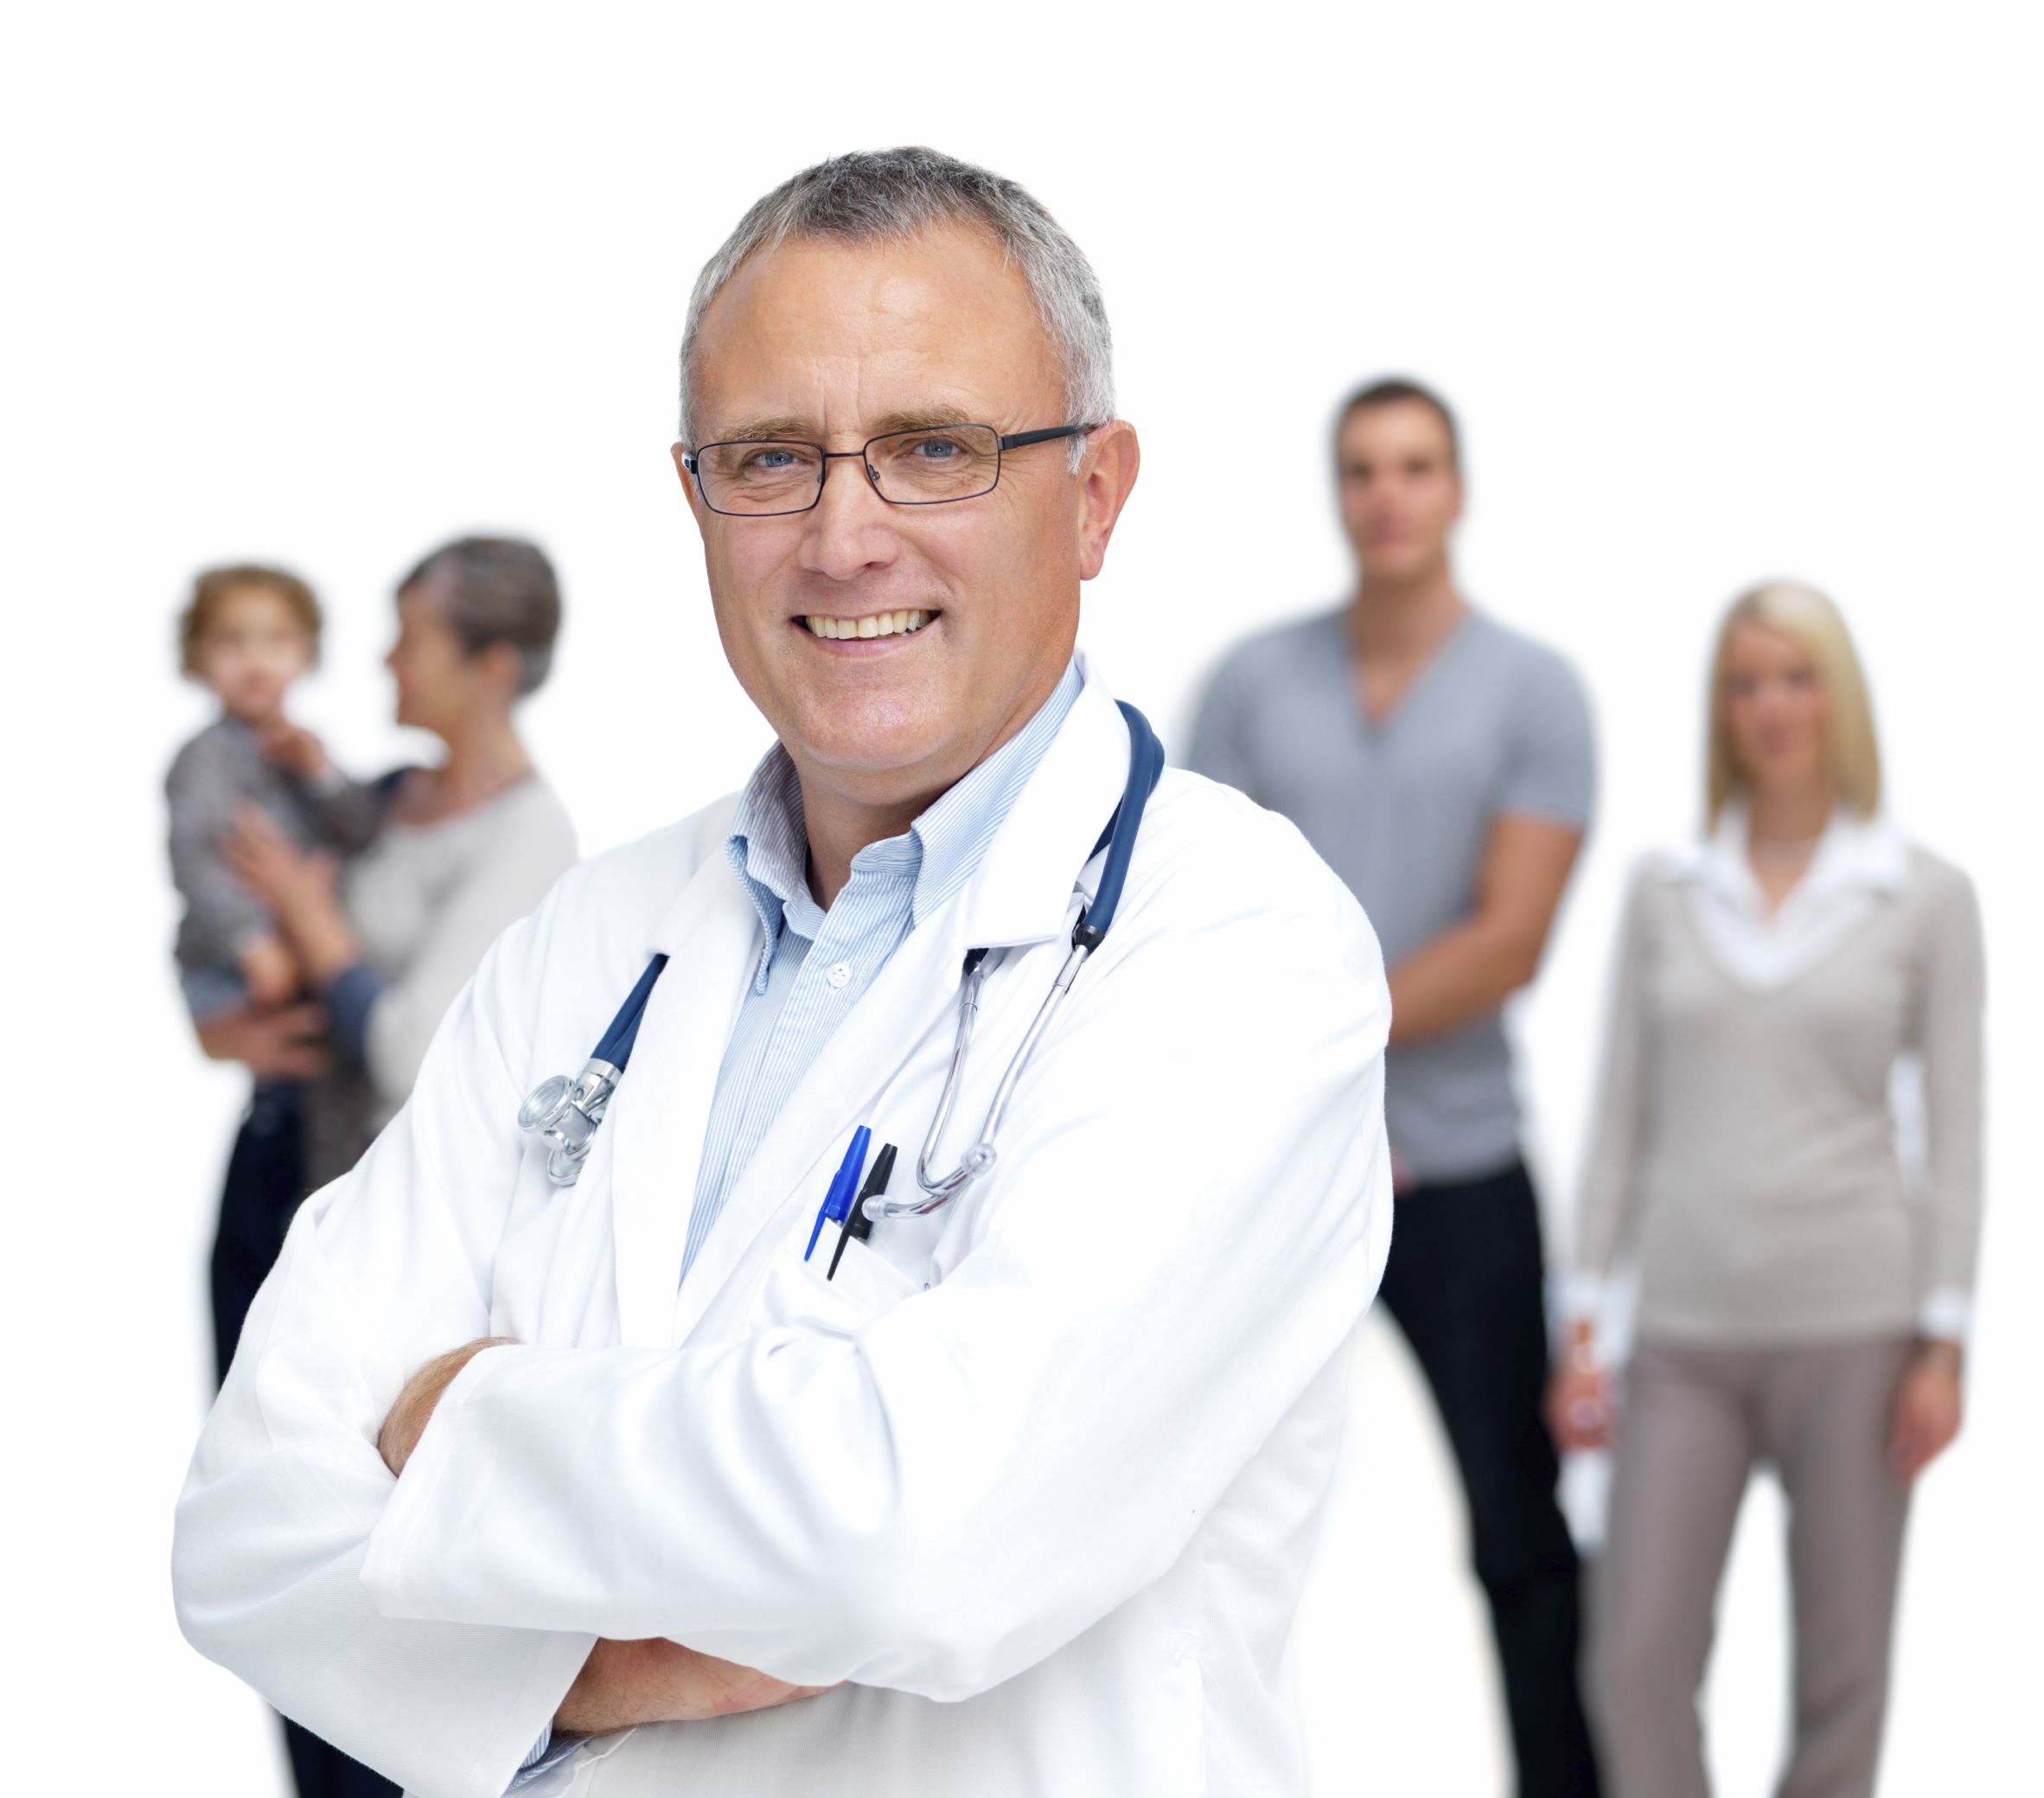 Physician in the front with a family out of focus in the background.